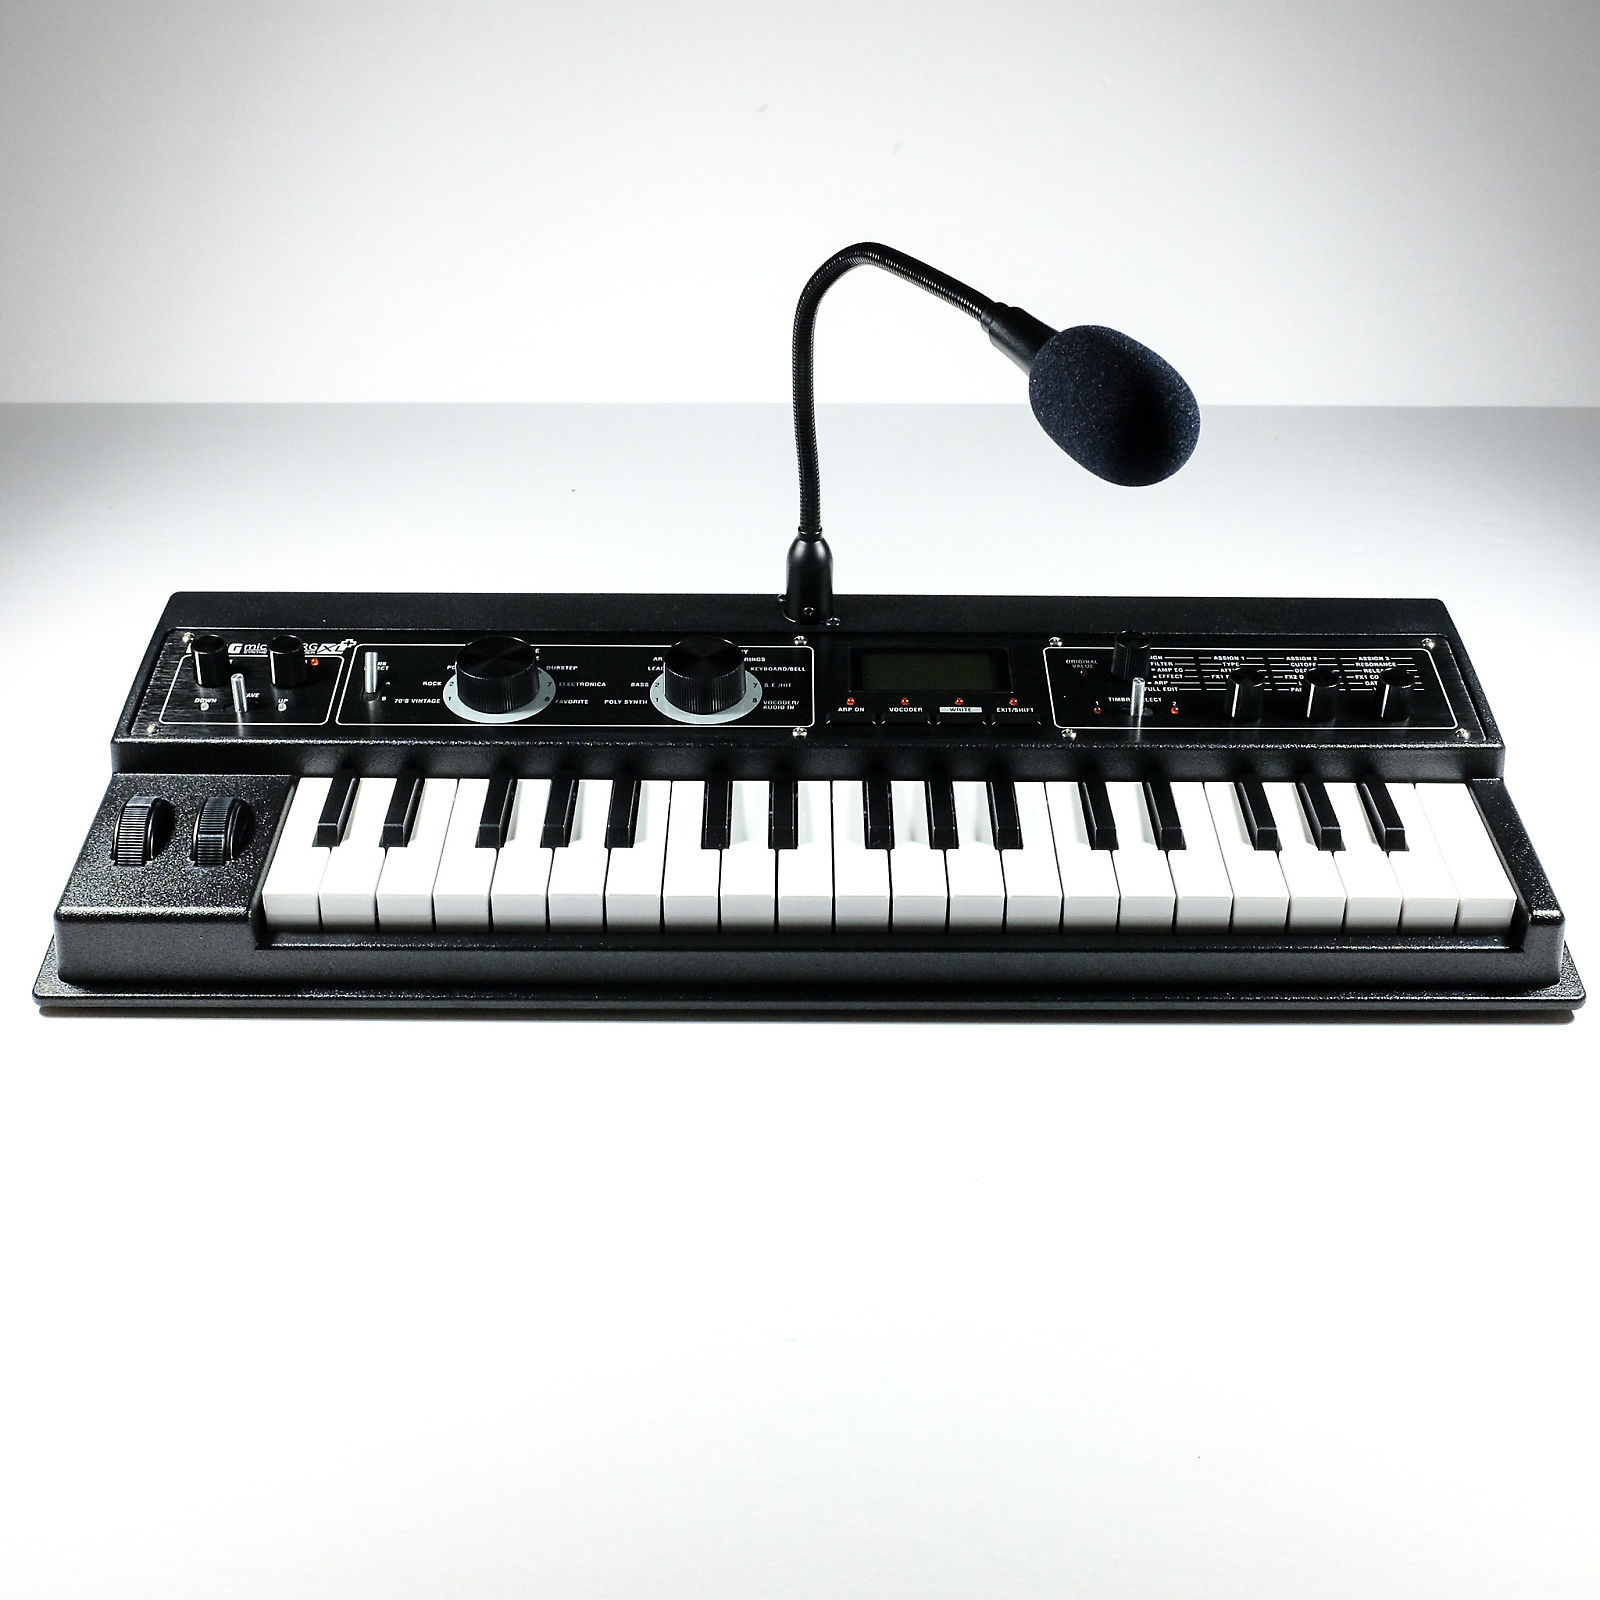 korg microkorg xl analog modeling synthesizer w vocoder reverb. Black Bedroom Furniture Sets. Home Design Ideas